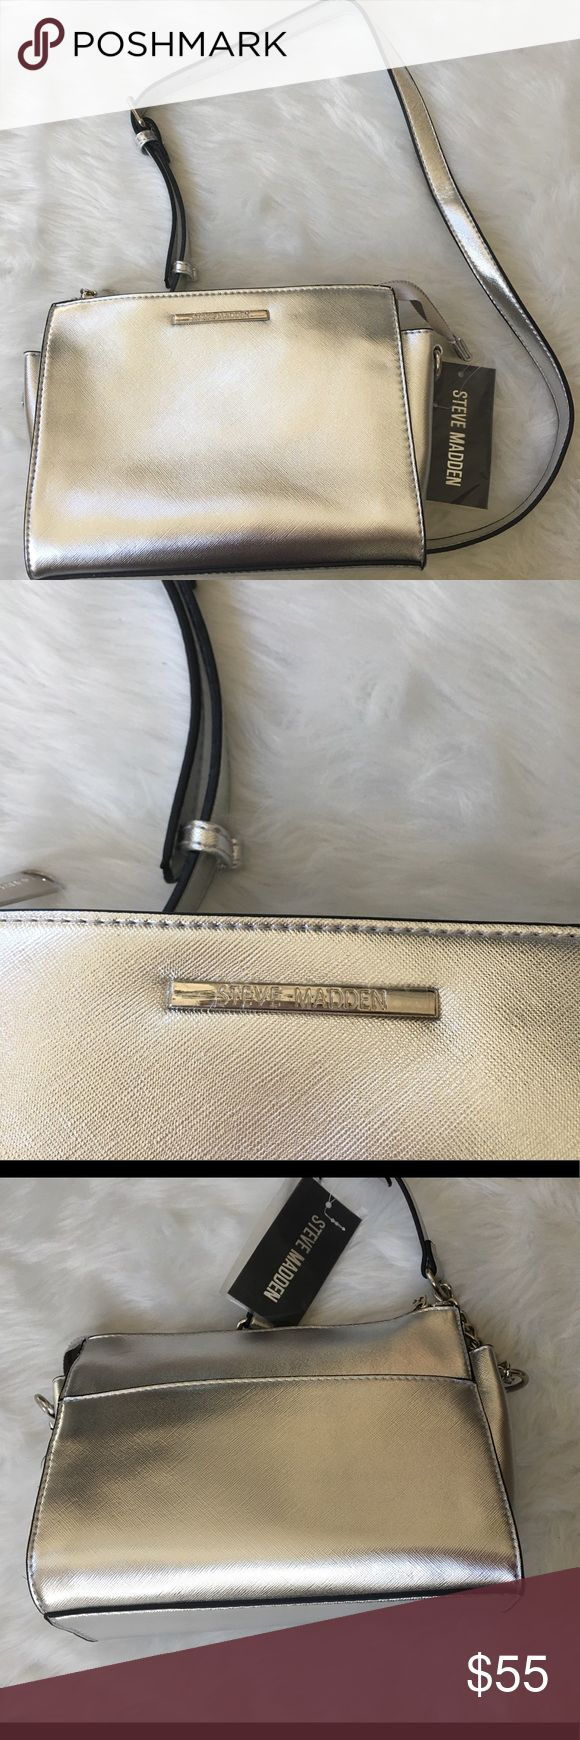 Steve Madden Metallic Silver Purse Brand new with tags - such a great size and style | please pay attention to photos regarding condition | Silver hardware Bags